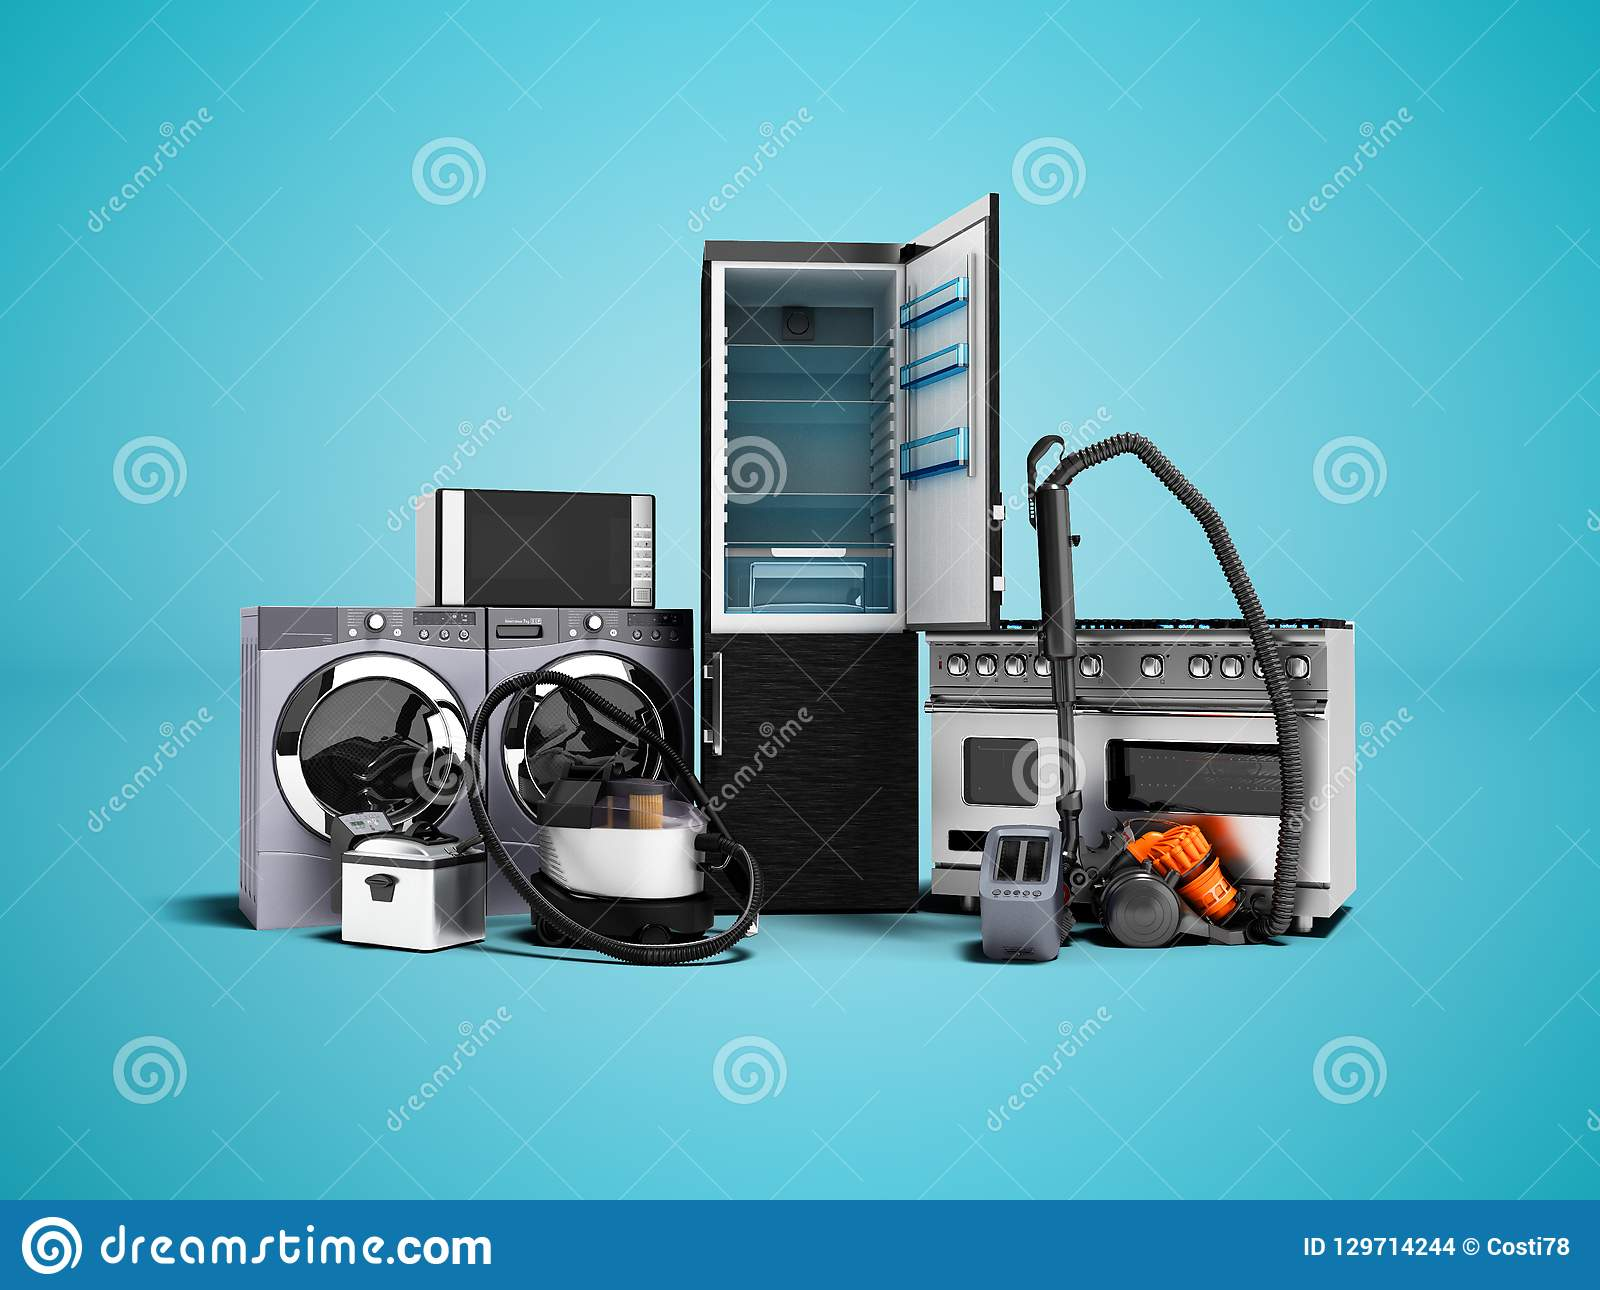 Microwave Cartoons Illustrations Amp Vector Stock Images